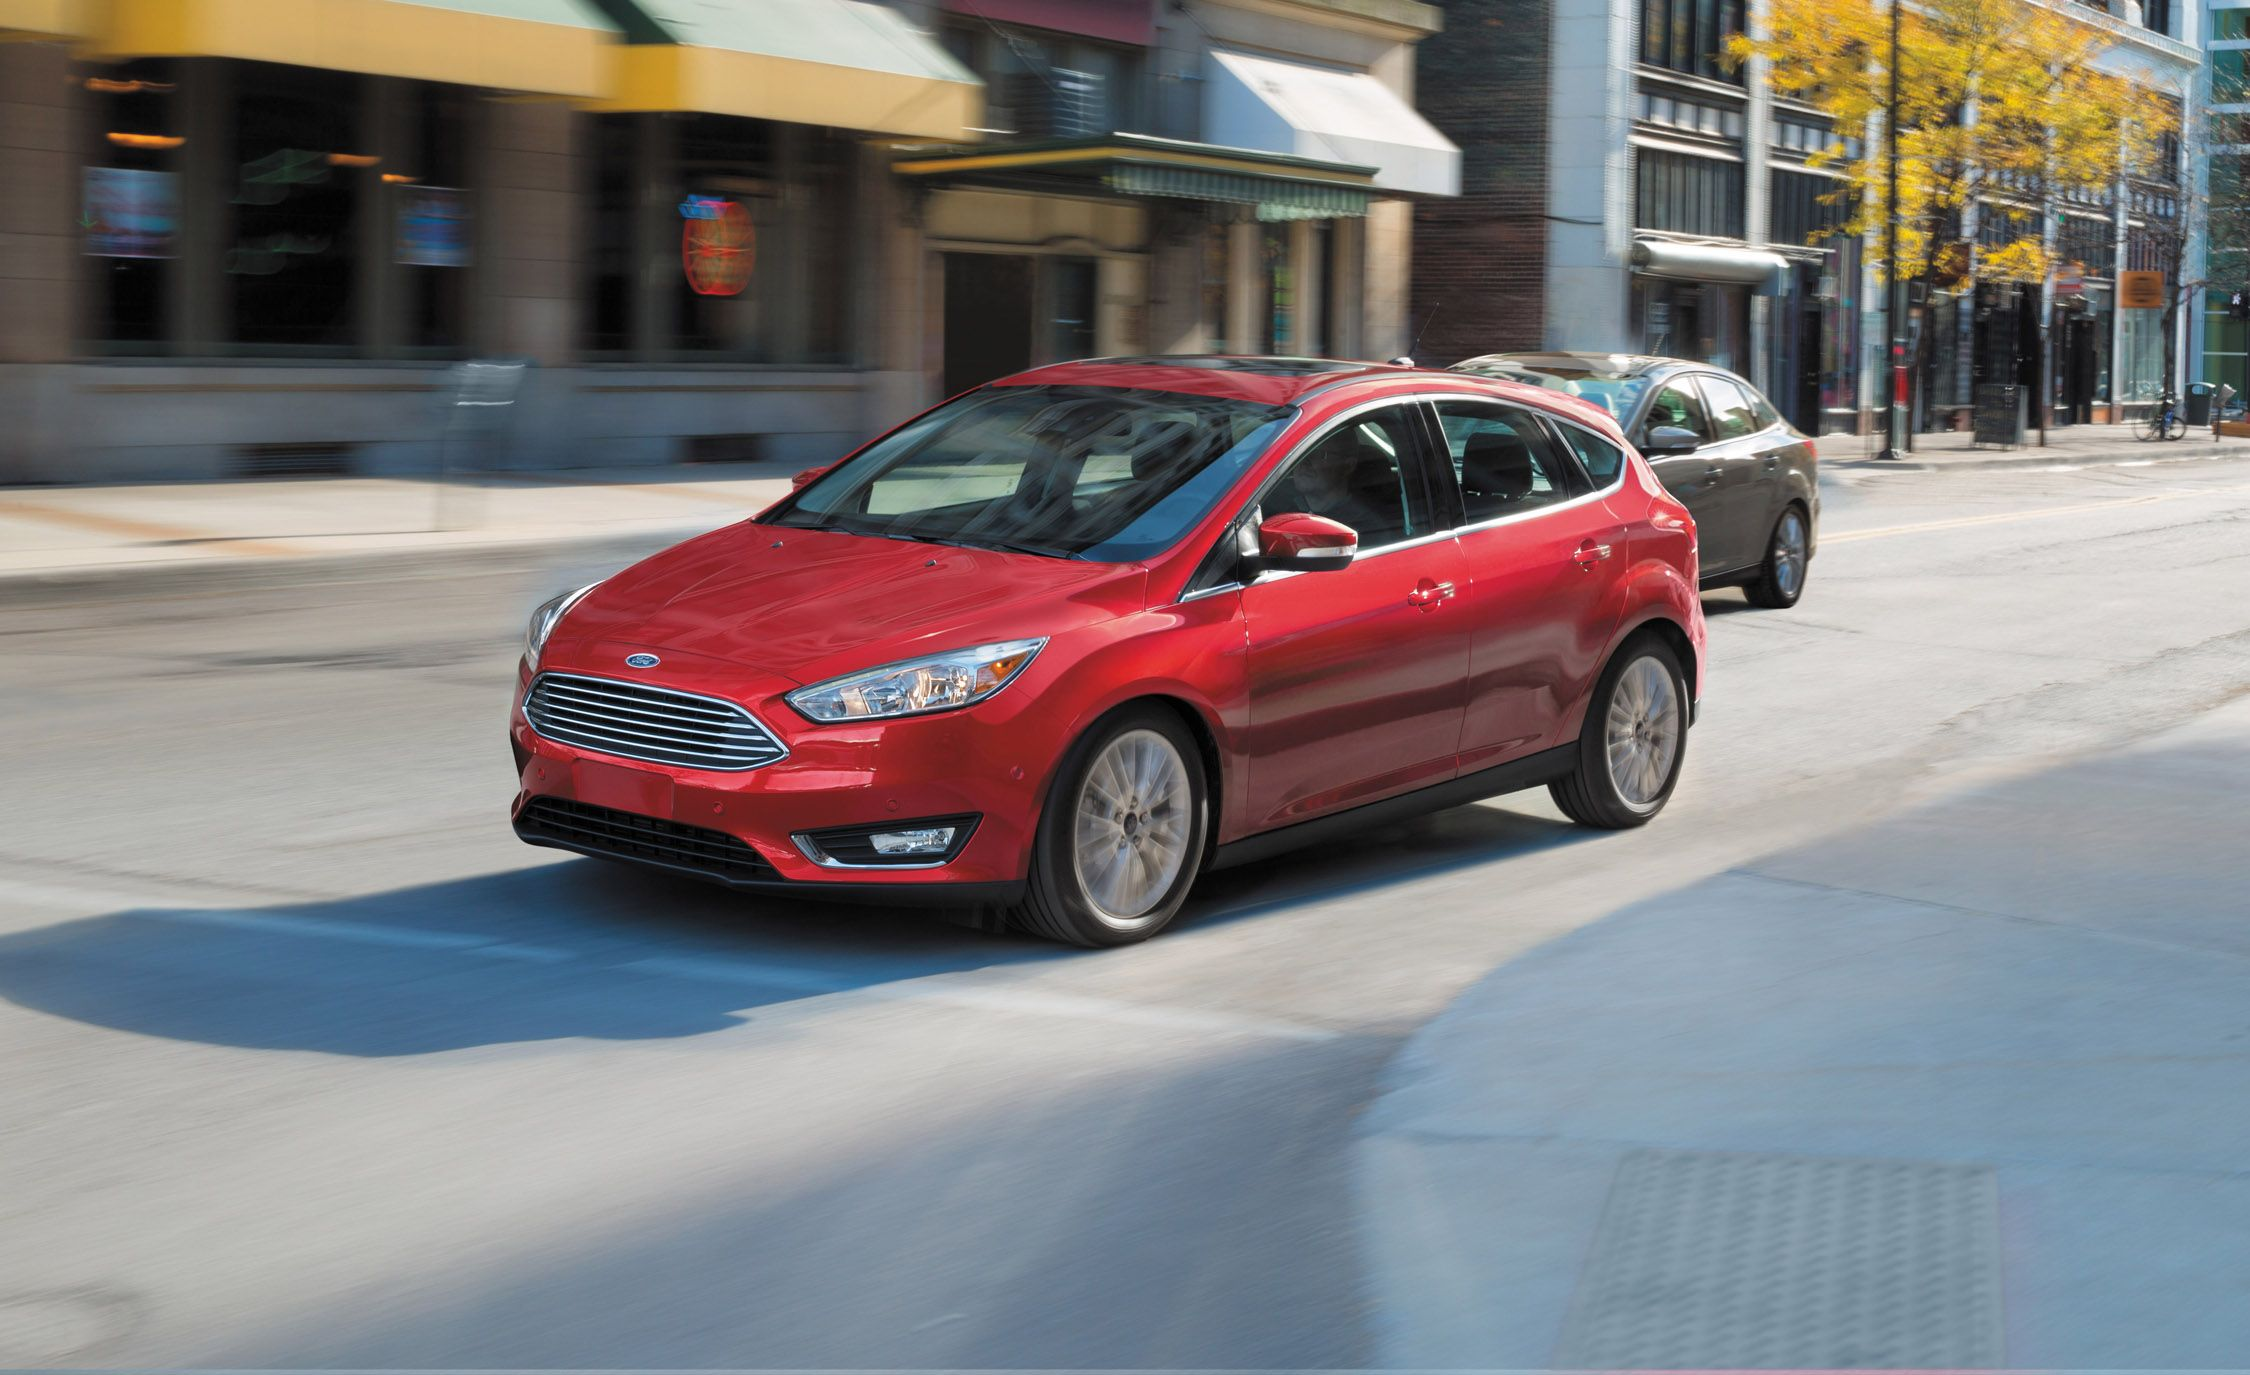 2018 Ford Focus & 2018 Ford Focus | In-Depth Model Review | Car and Driver markmcfarlin.com